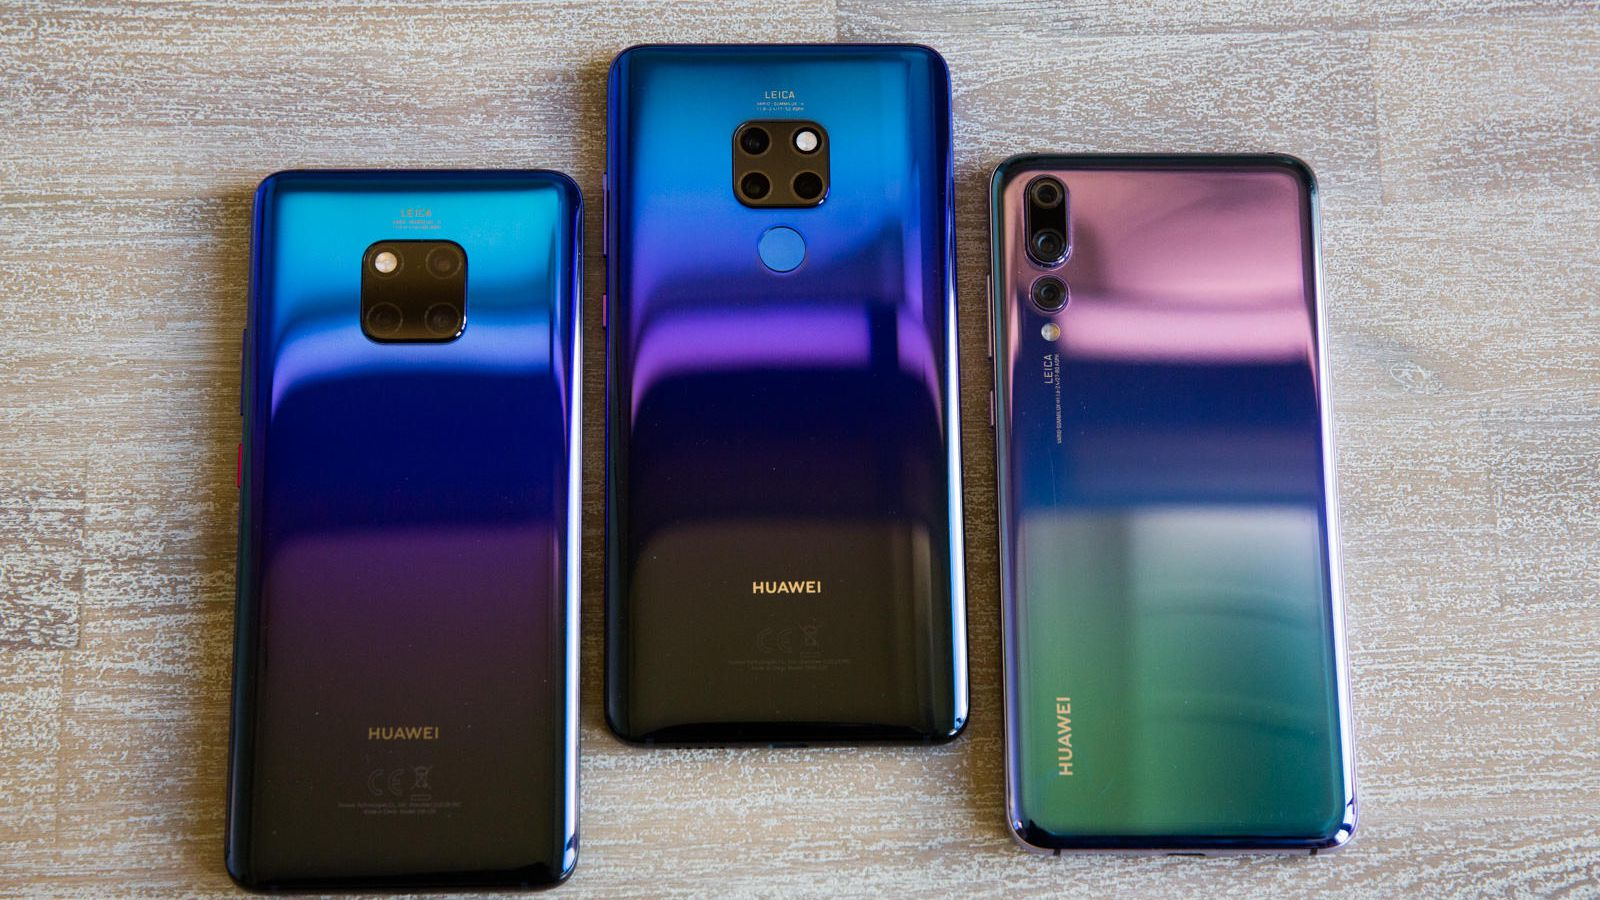 Numerous problems have not prevented Huawei to sell 200 million smartphones in 2018